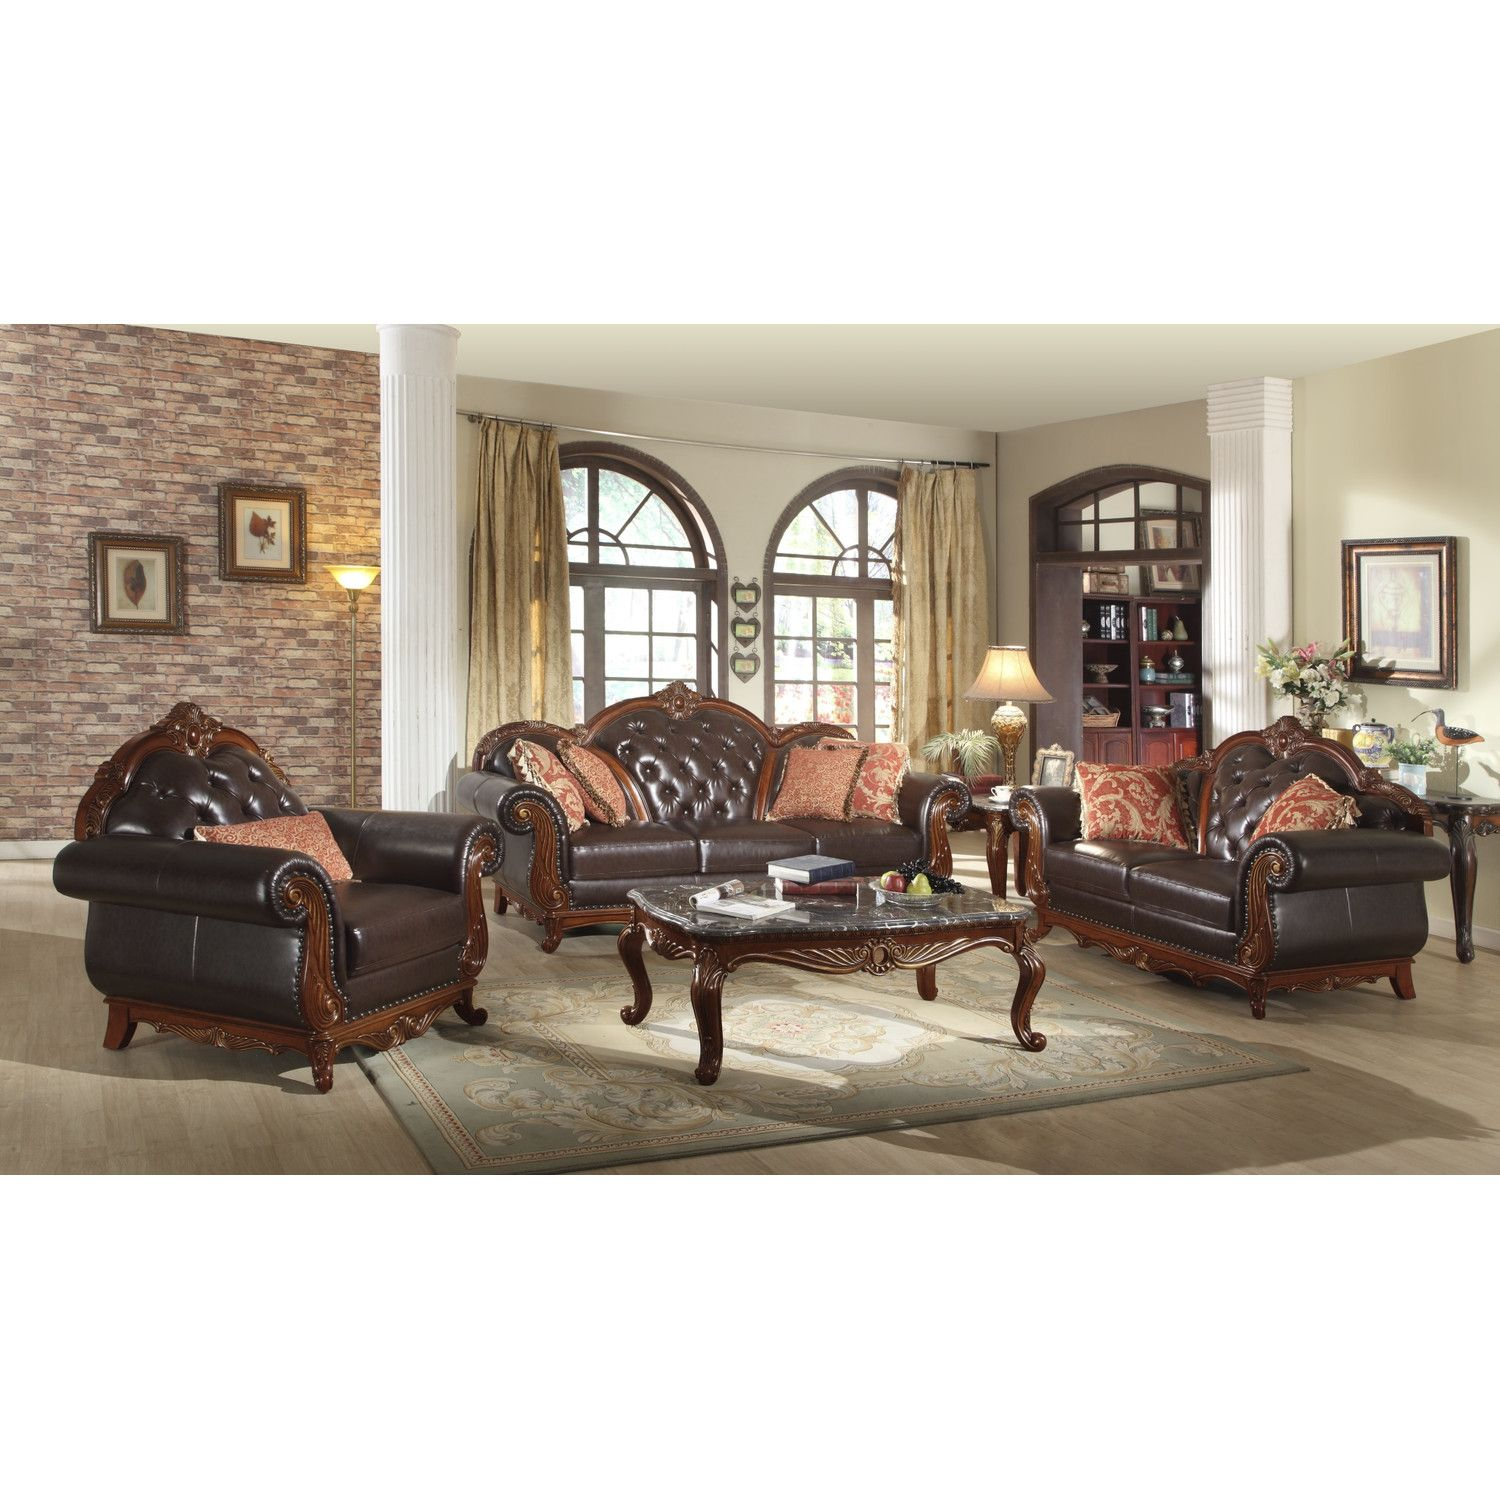 Meridian Furniture USA Bellini Living Room Set U0026 Reviews | Wayfair